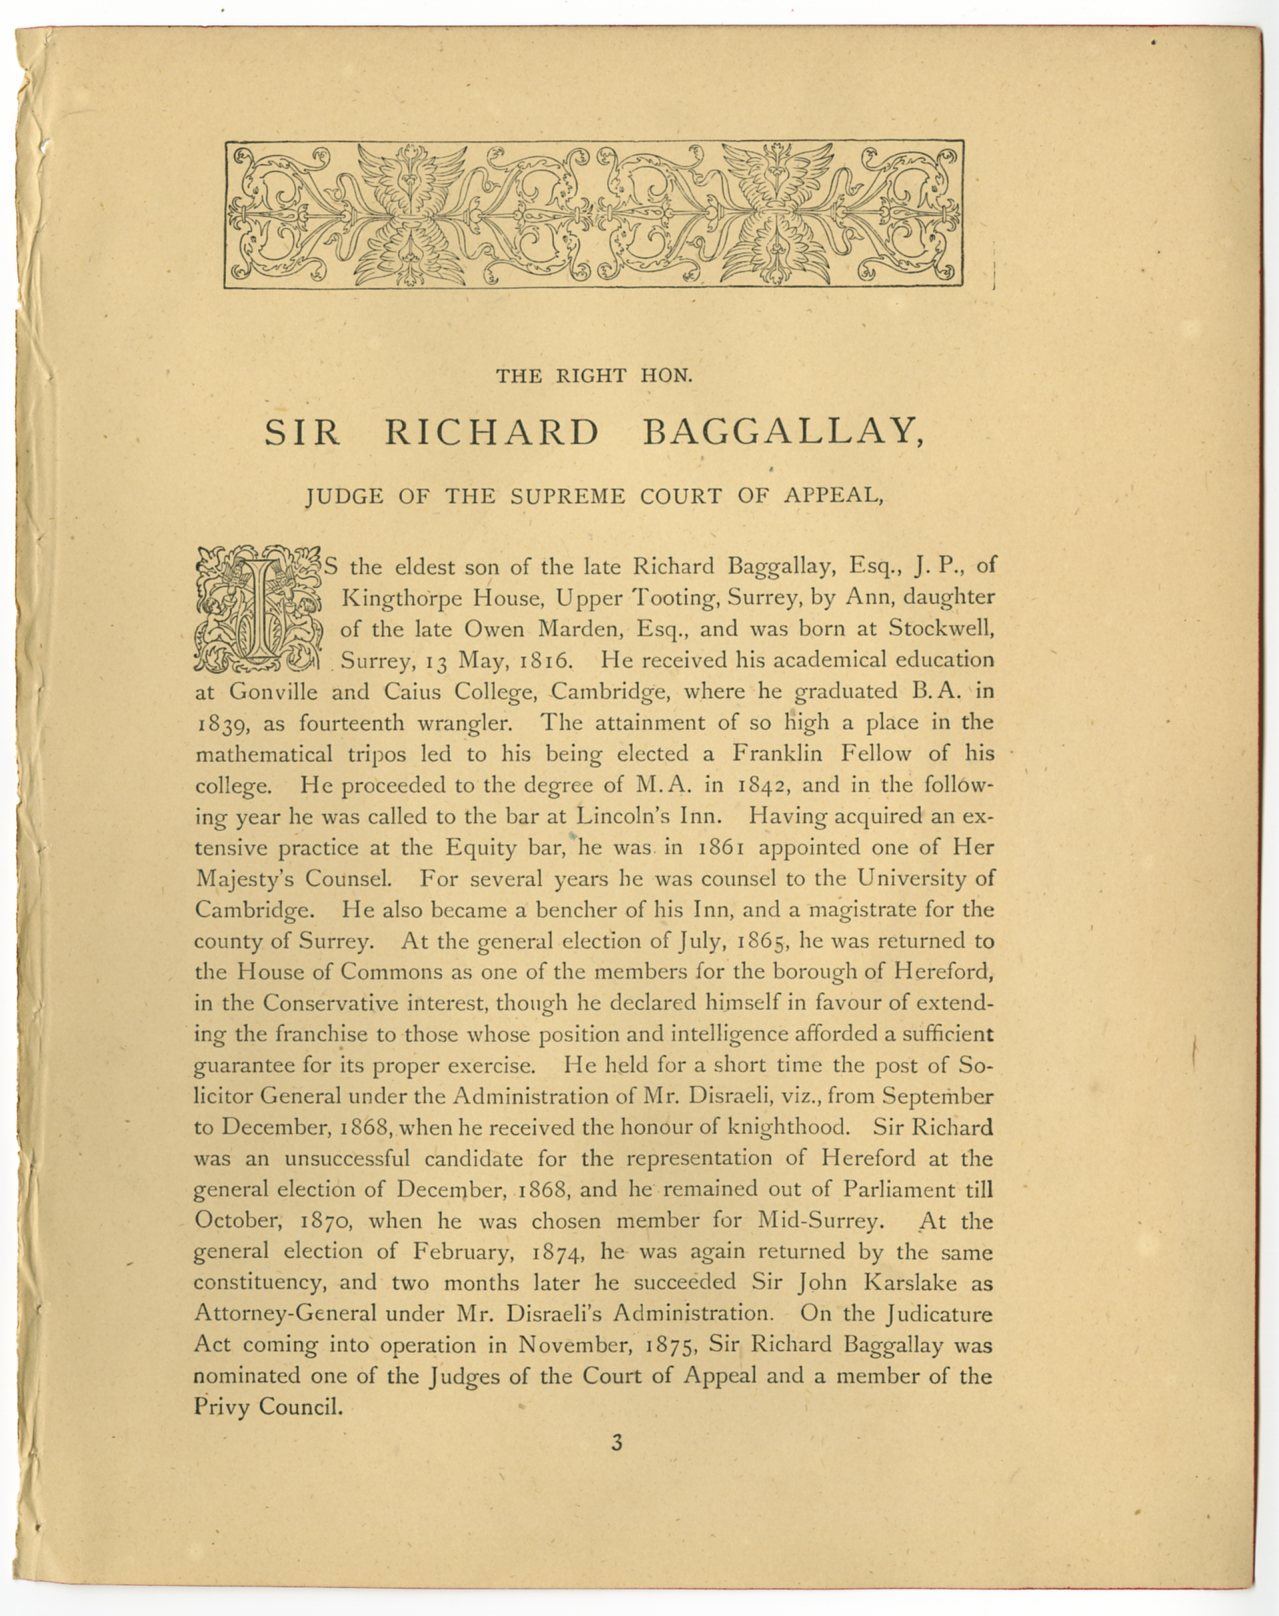 Richard Baggallay